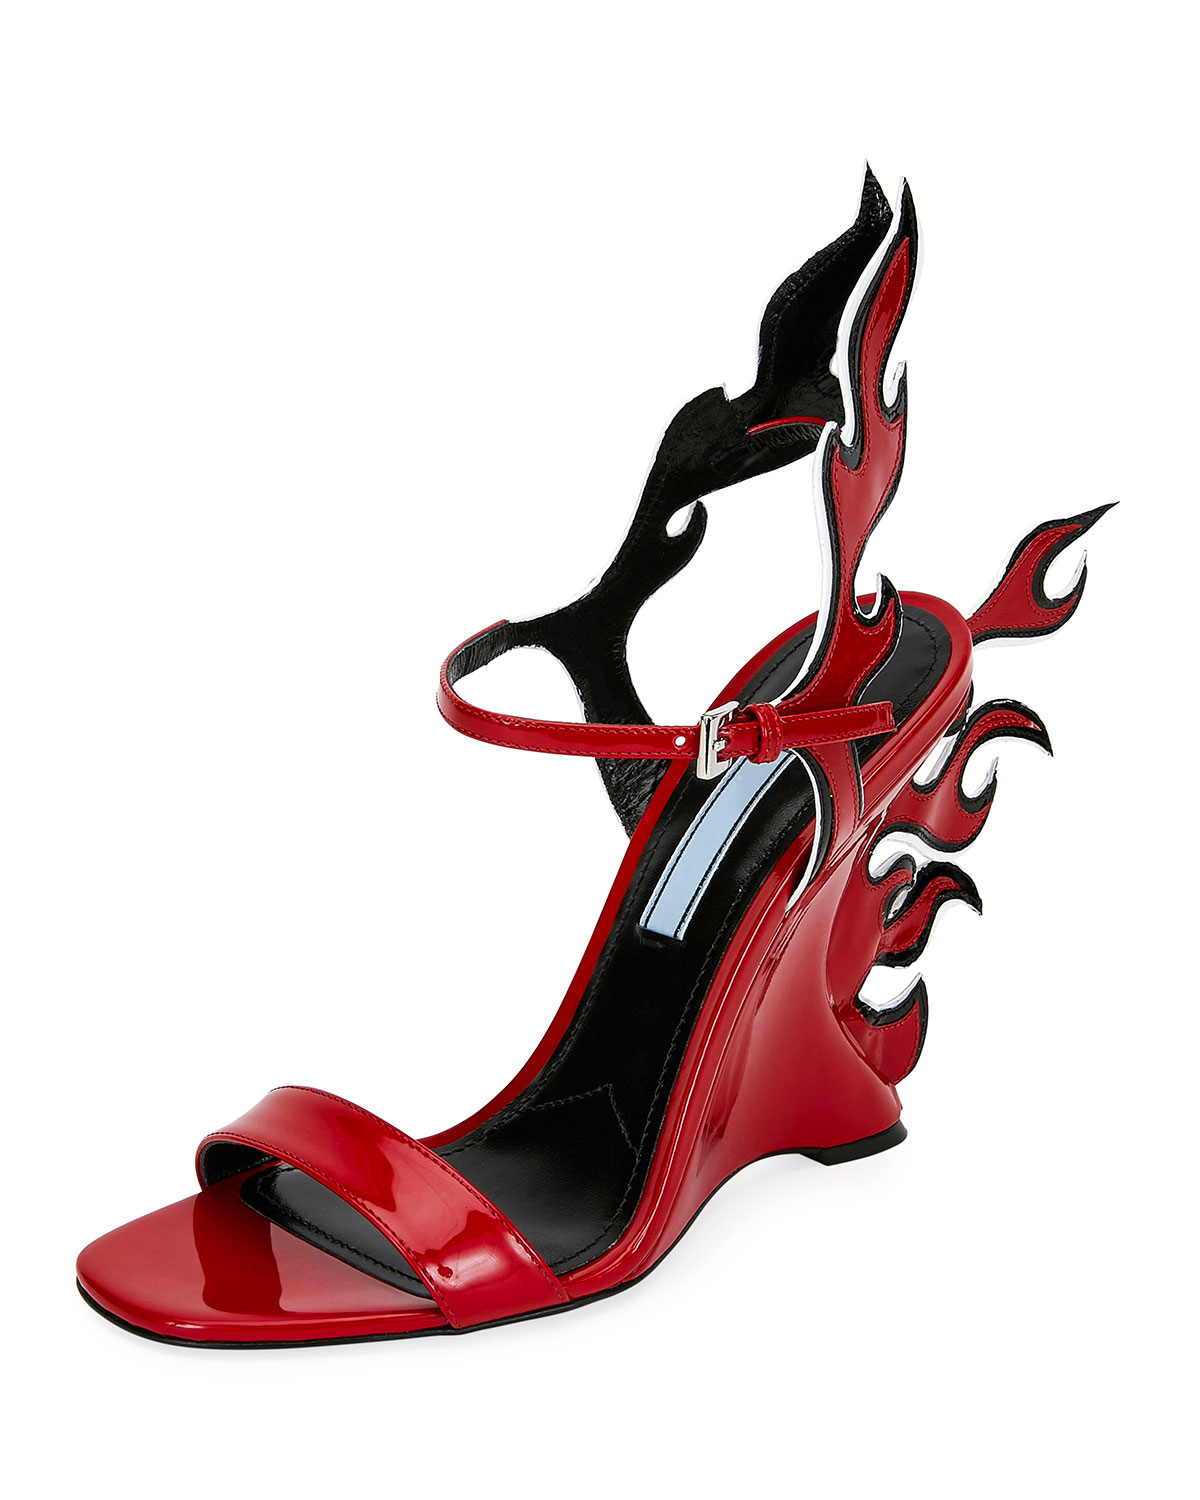 b2dbd683feac Prada Flame Leather 110mm Sandals